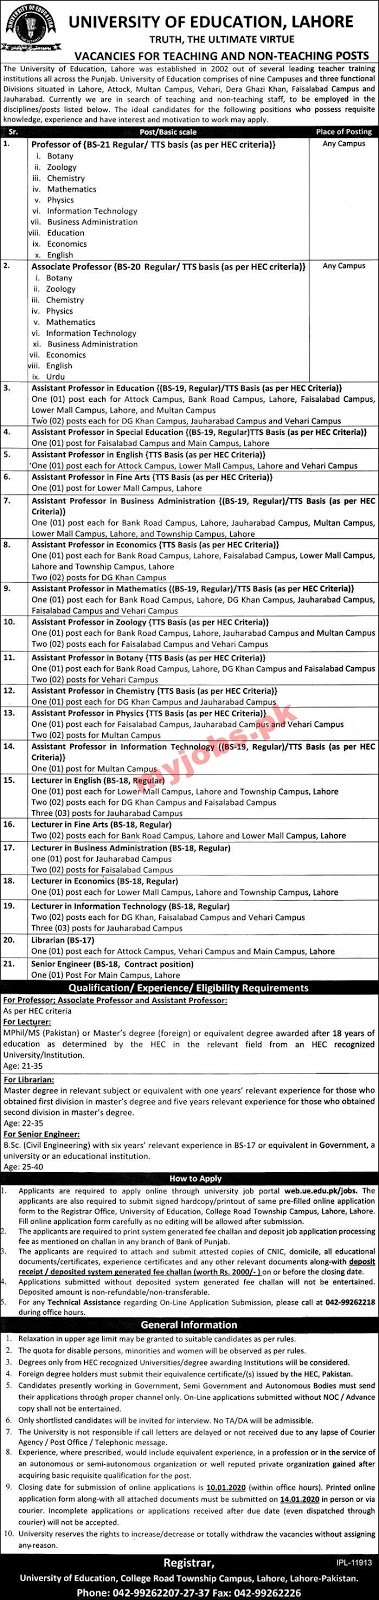 UNIVERSITY OF EDUCATION, LAHORE VACANCIES FOR TEACHING AND NON-TEACHING POSTS 2020